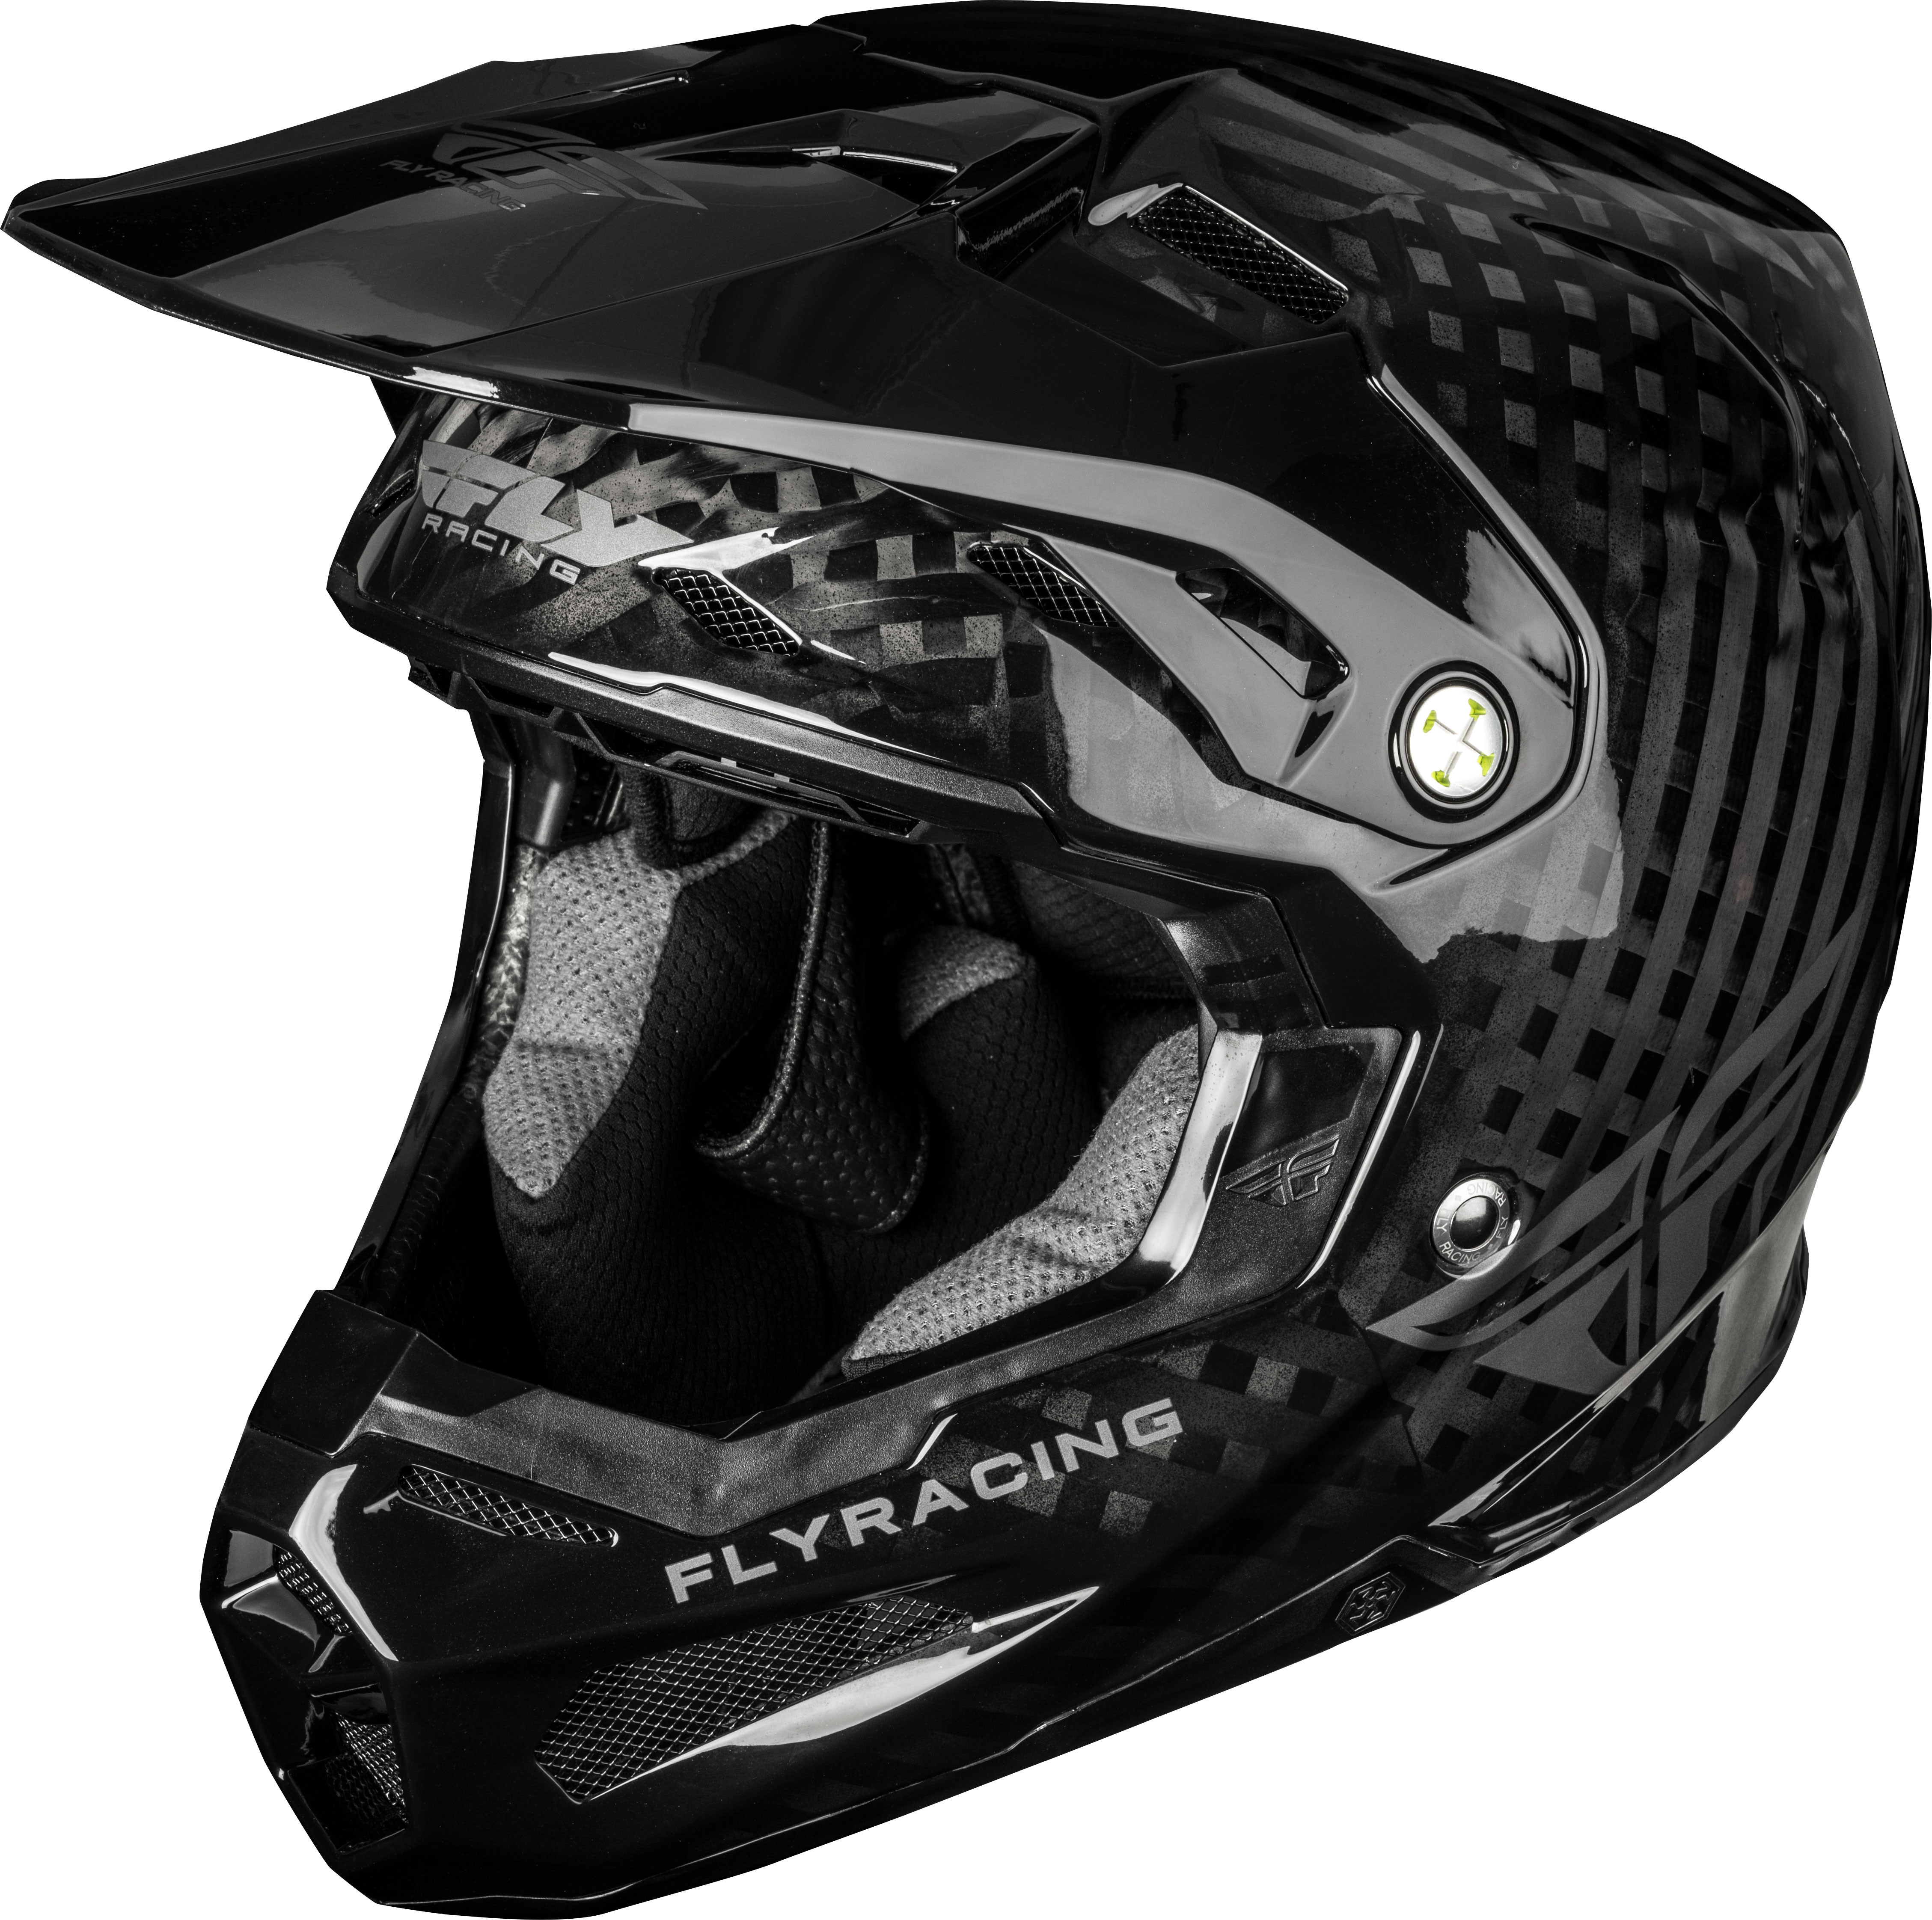 FORMULA SOLID Helmet Black,  Carbon MD 73-4400M